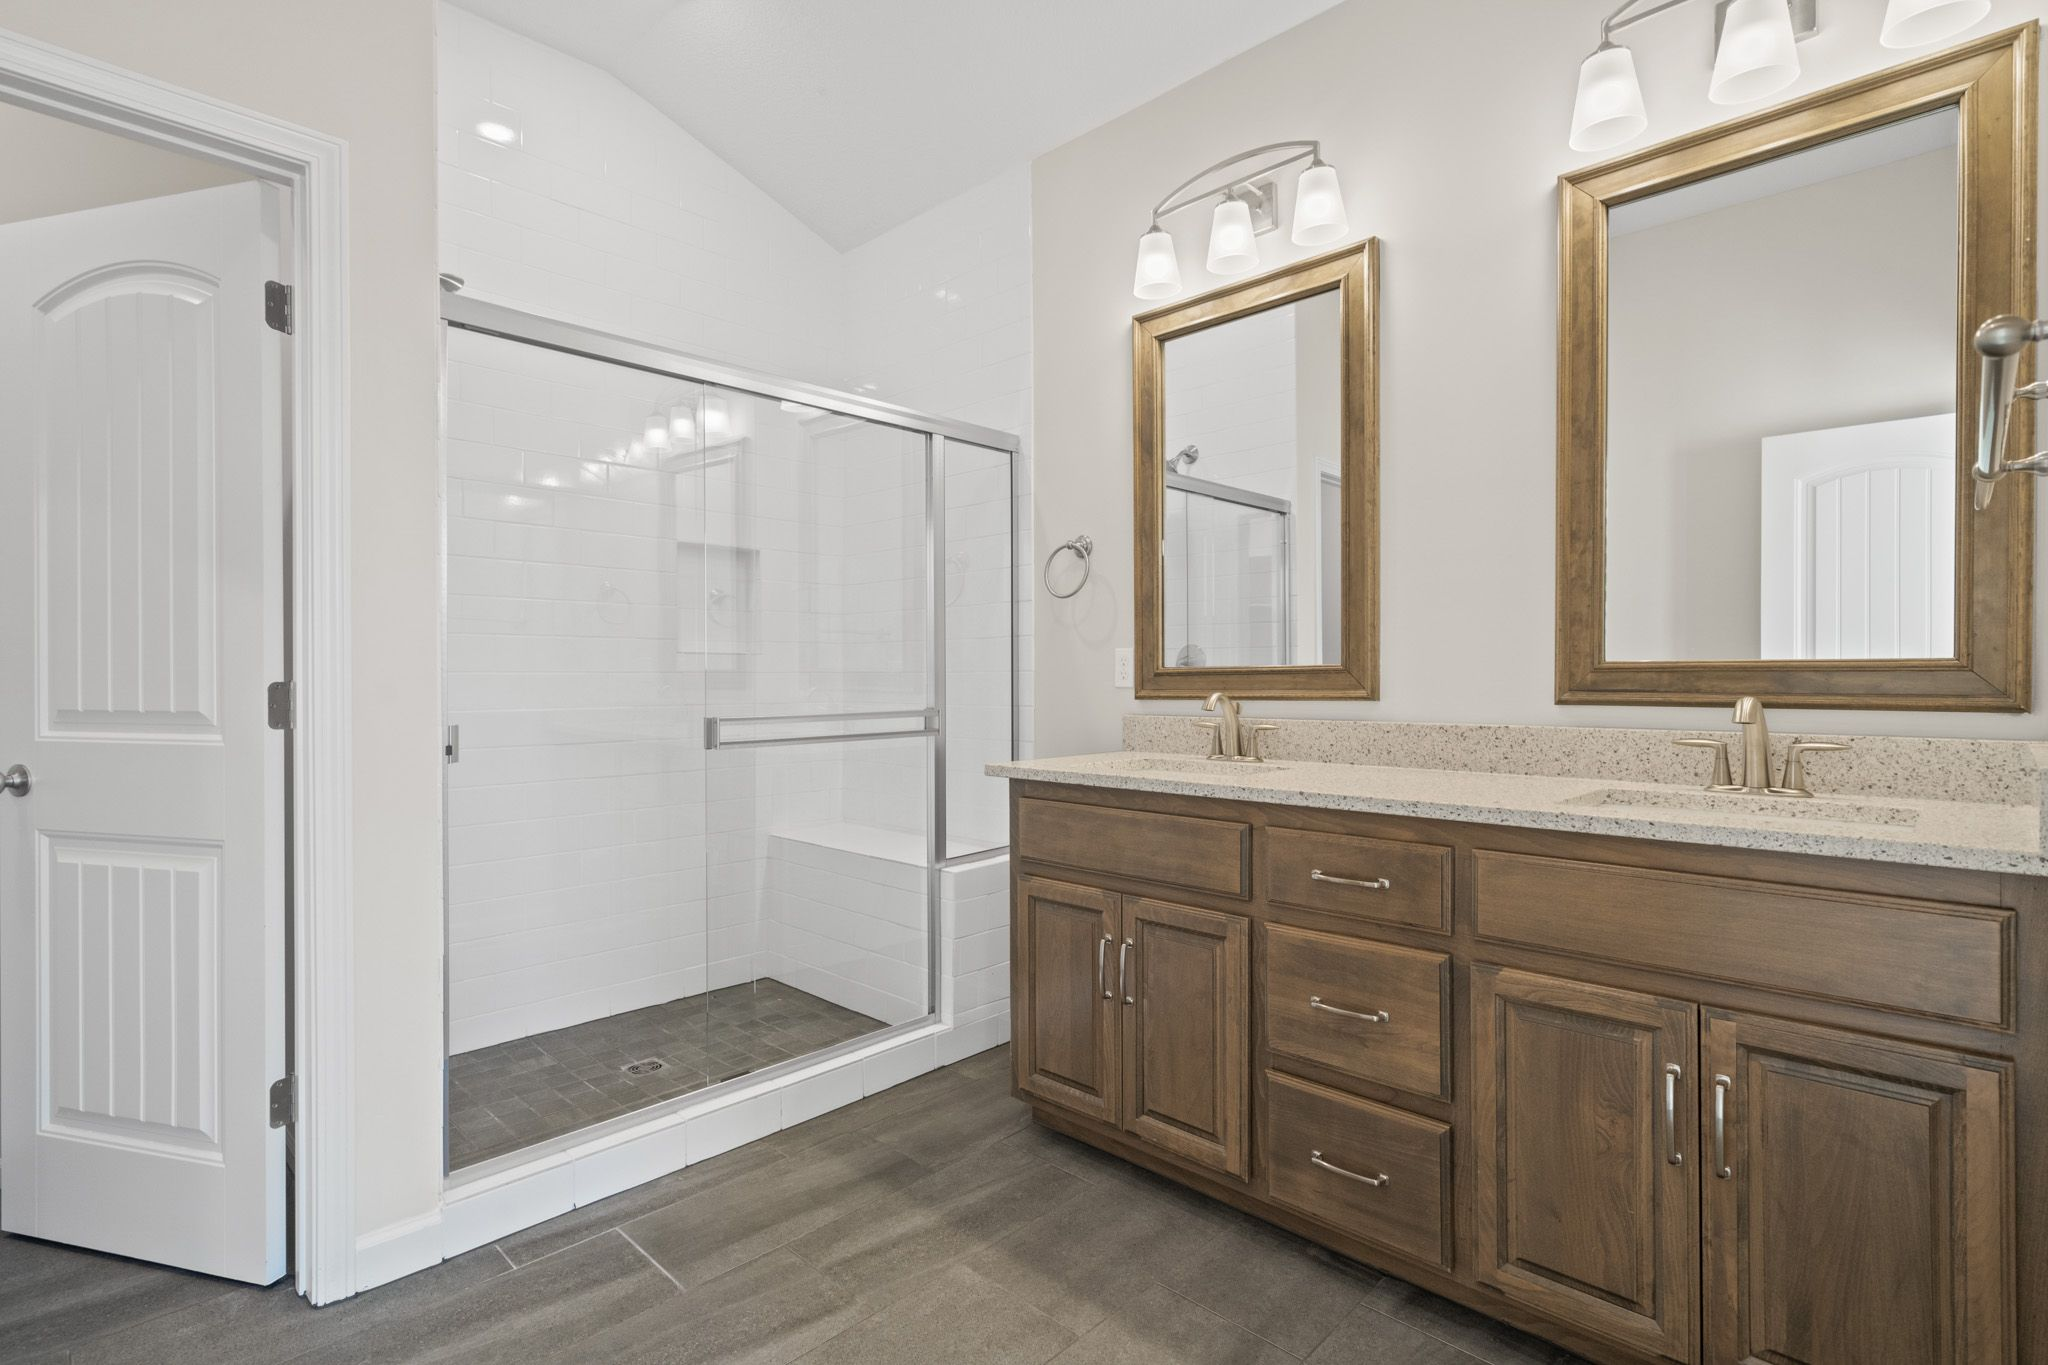 Bathroom featured in the Bradford - Care Free By Summit Homes in Kansas City, MO